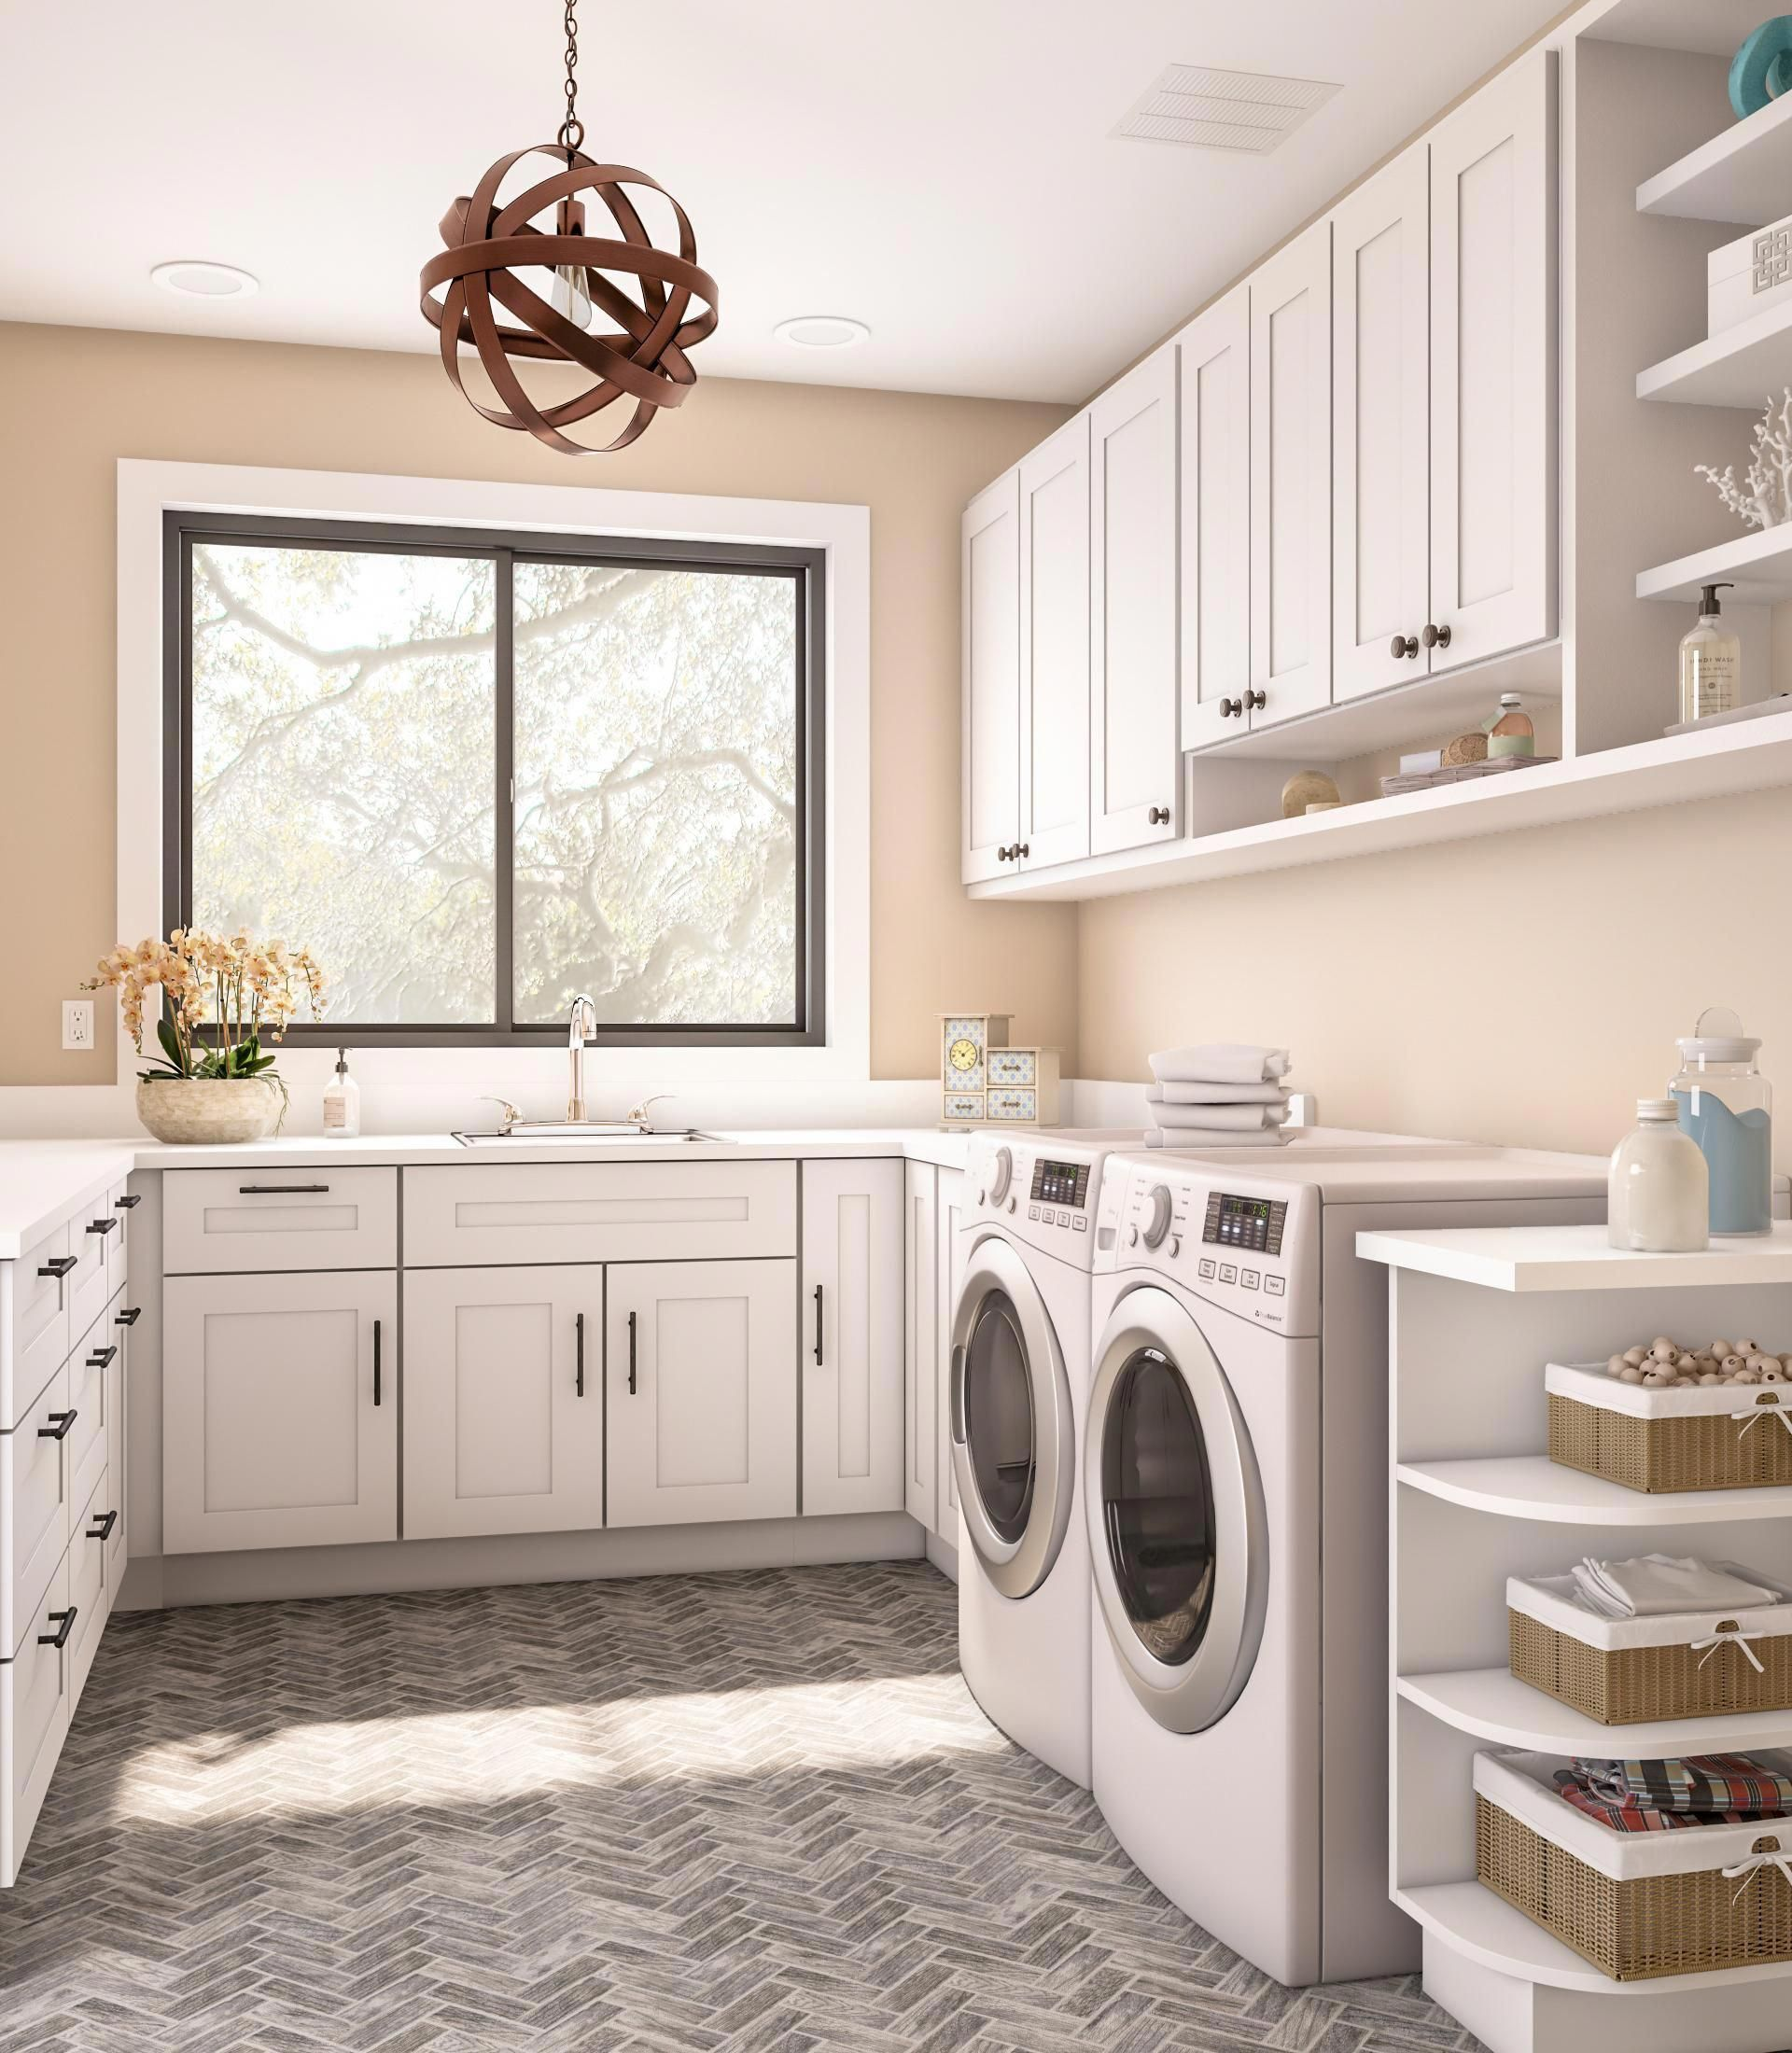 Escape Gray Kitchen: The Laundry-room Refresh Is All The Rage These Days. No